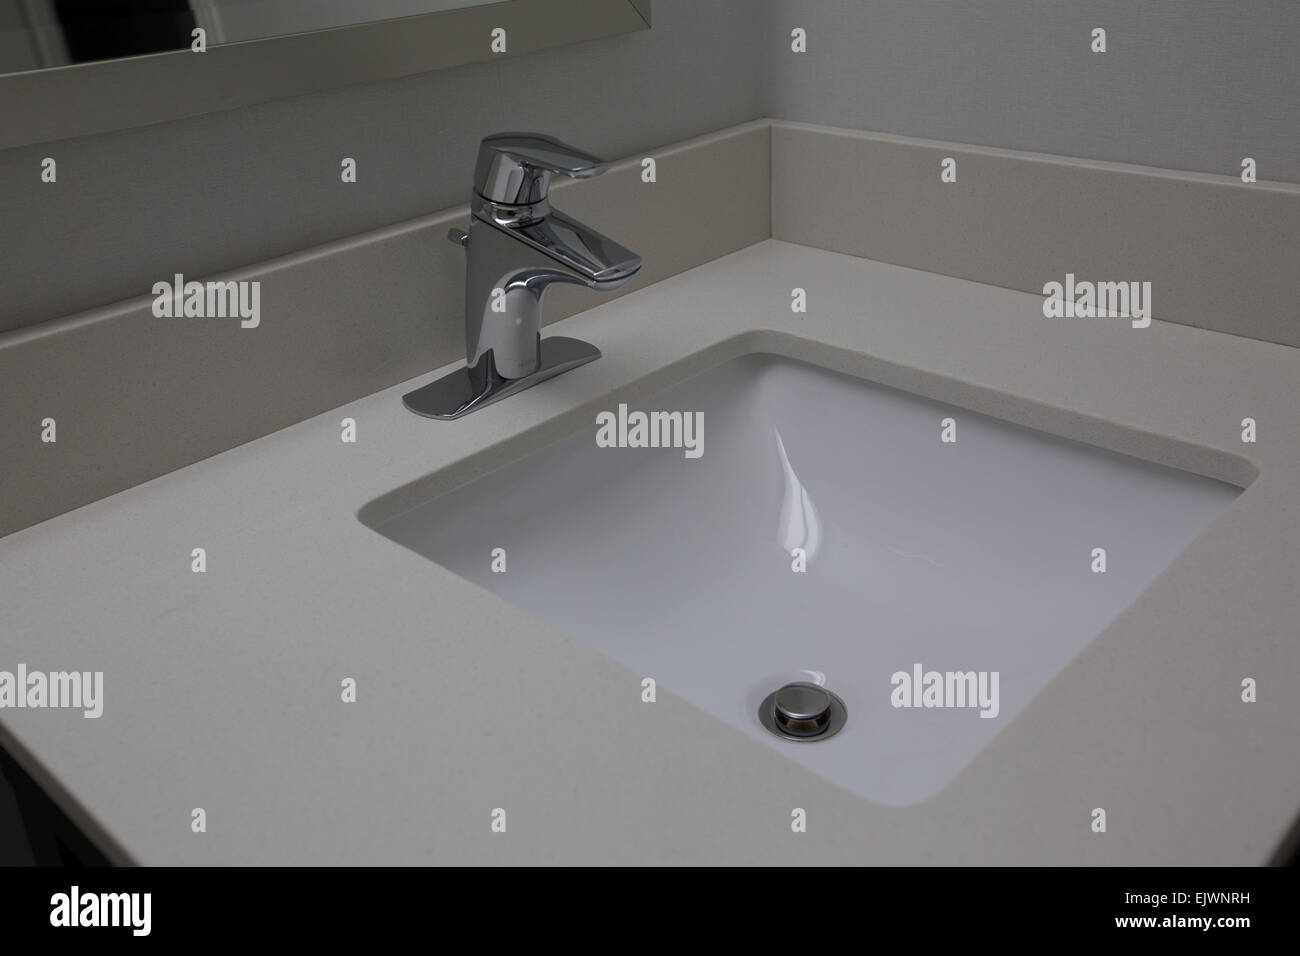 waschraum wei en waschbecken wasserhahn stockfoto bild 80471205 alamy. Black Bedroom Furniture Sets. Home Design Ideas